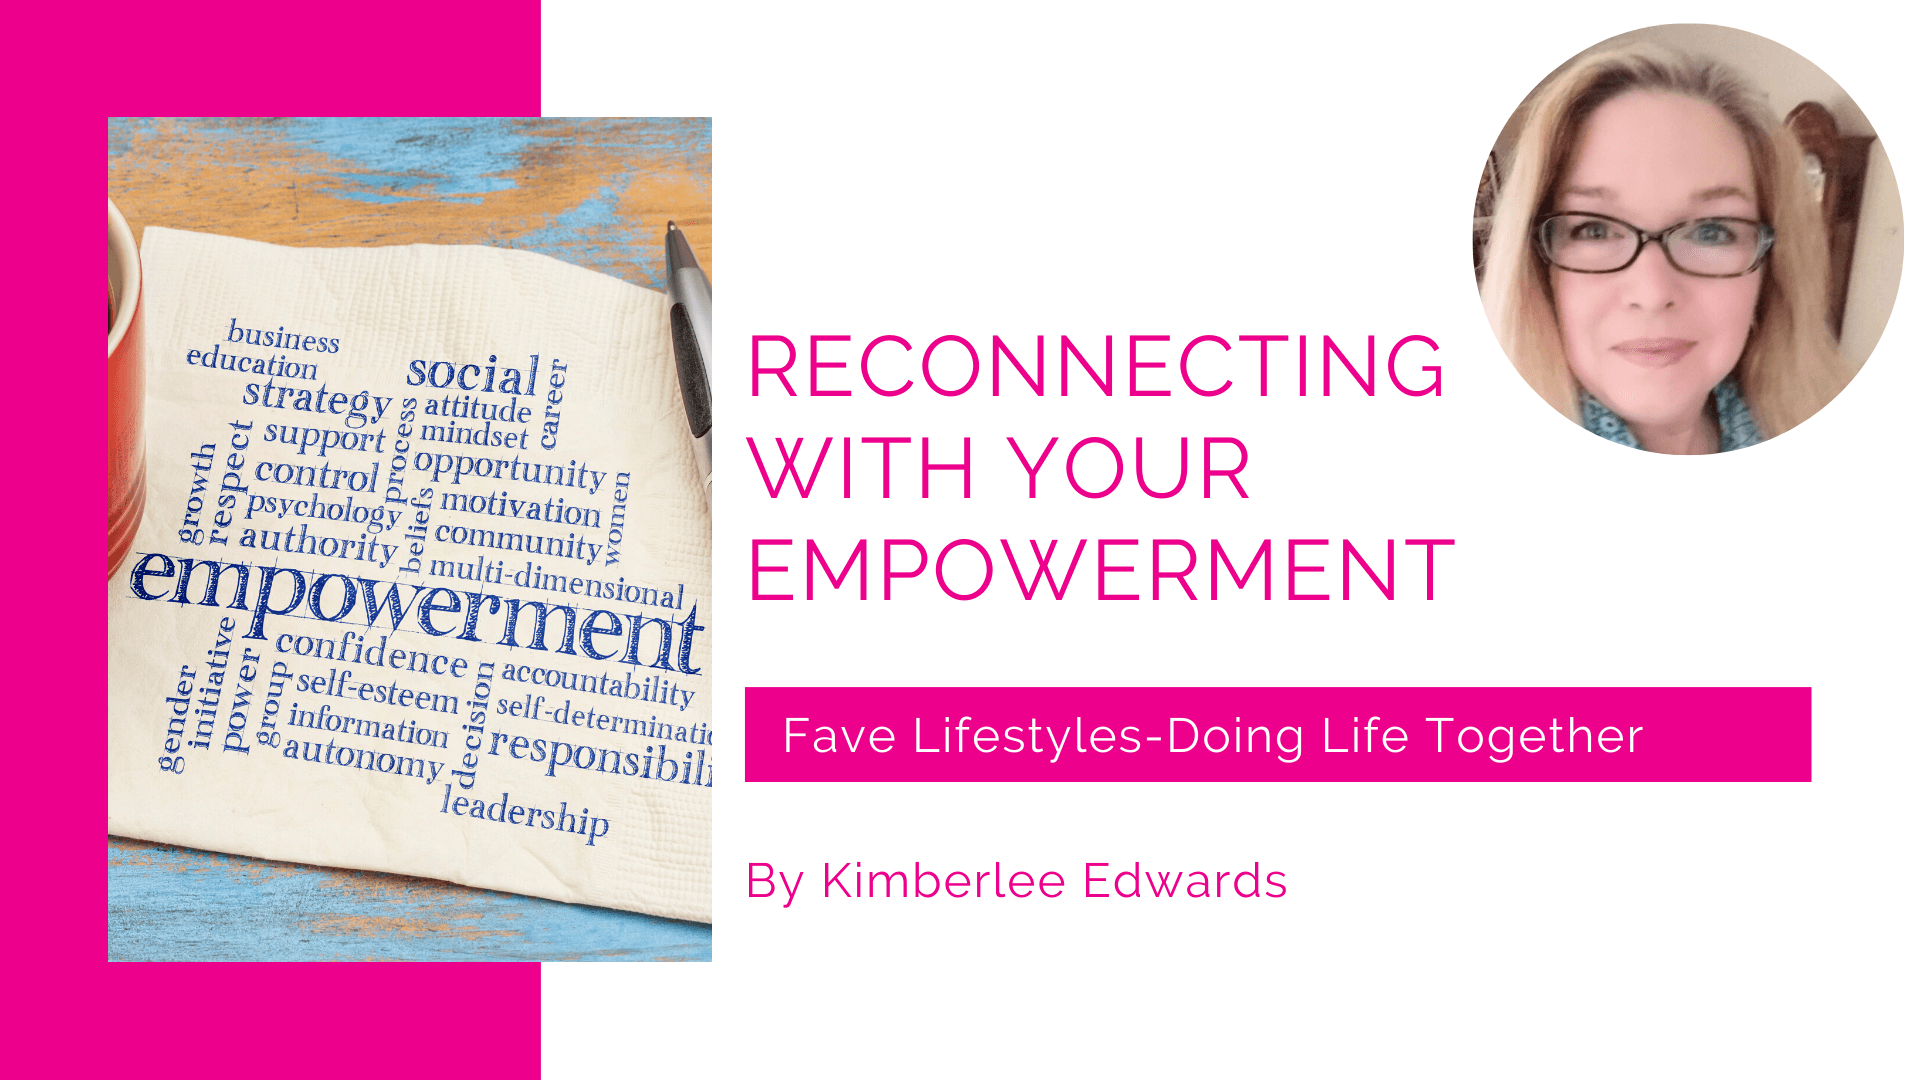 Reconnecting With Your Empowerment